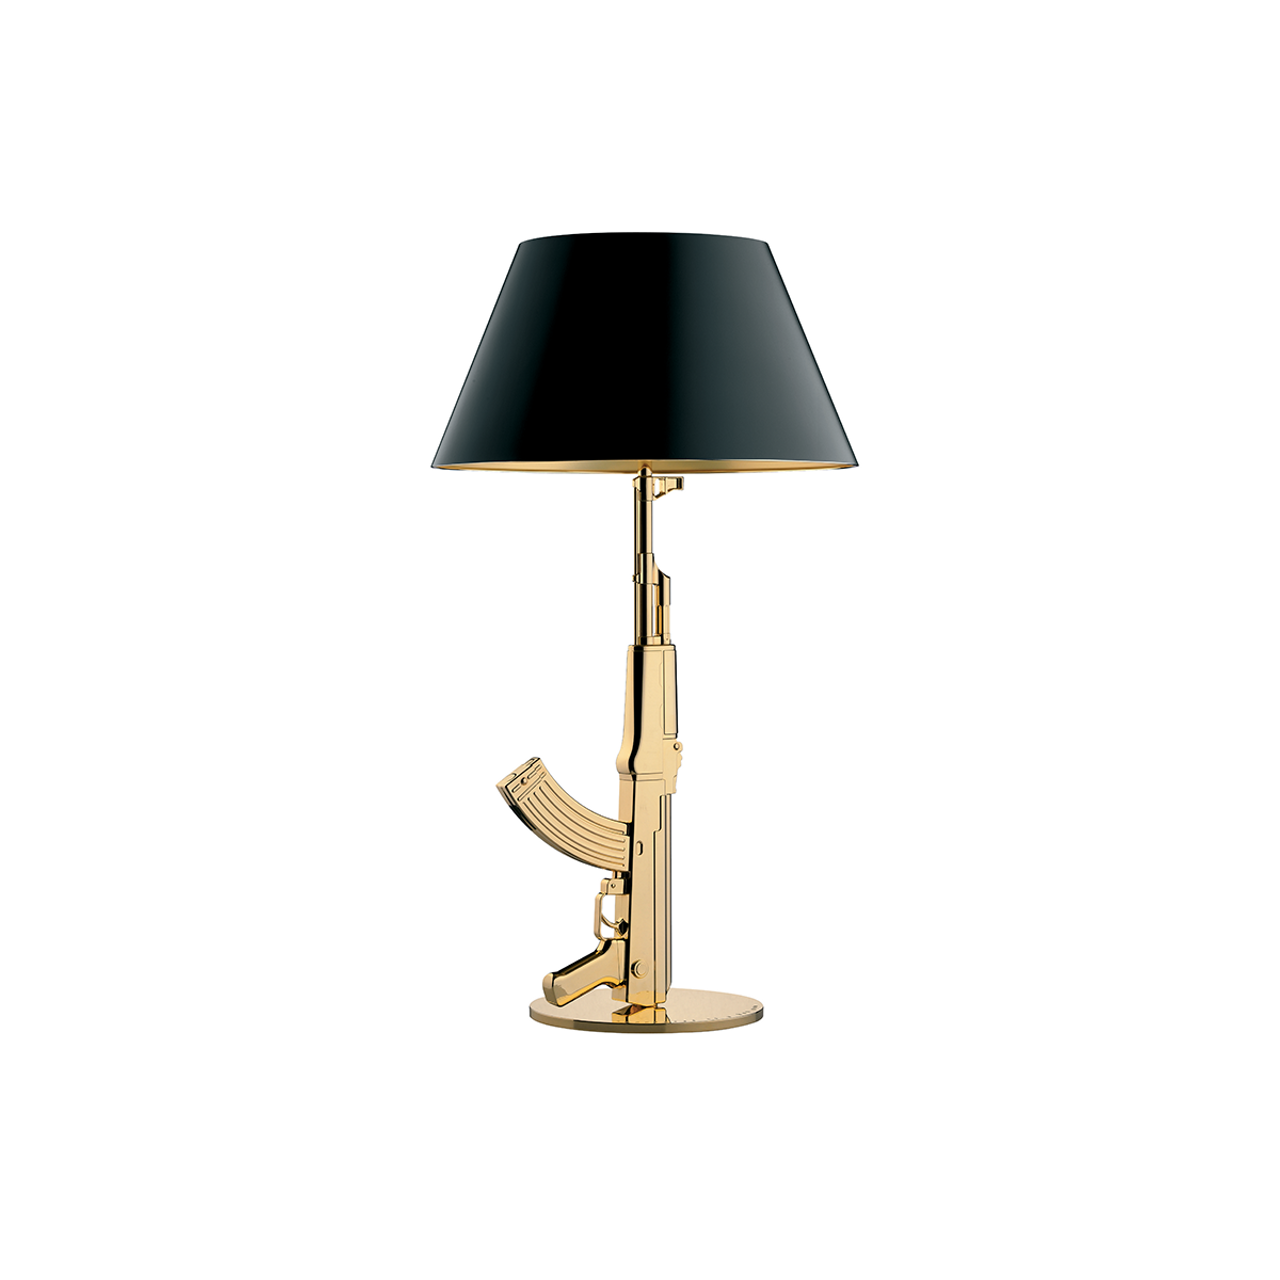 Guns Table Dimmable Lamp In Gold Or Chrome